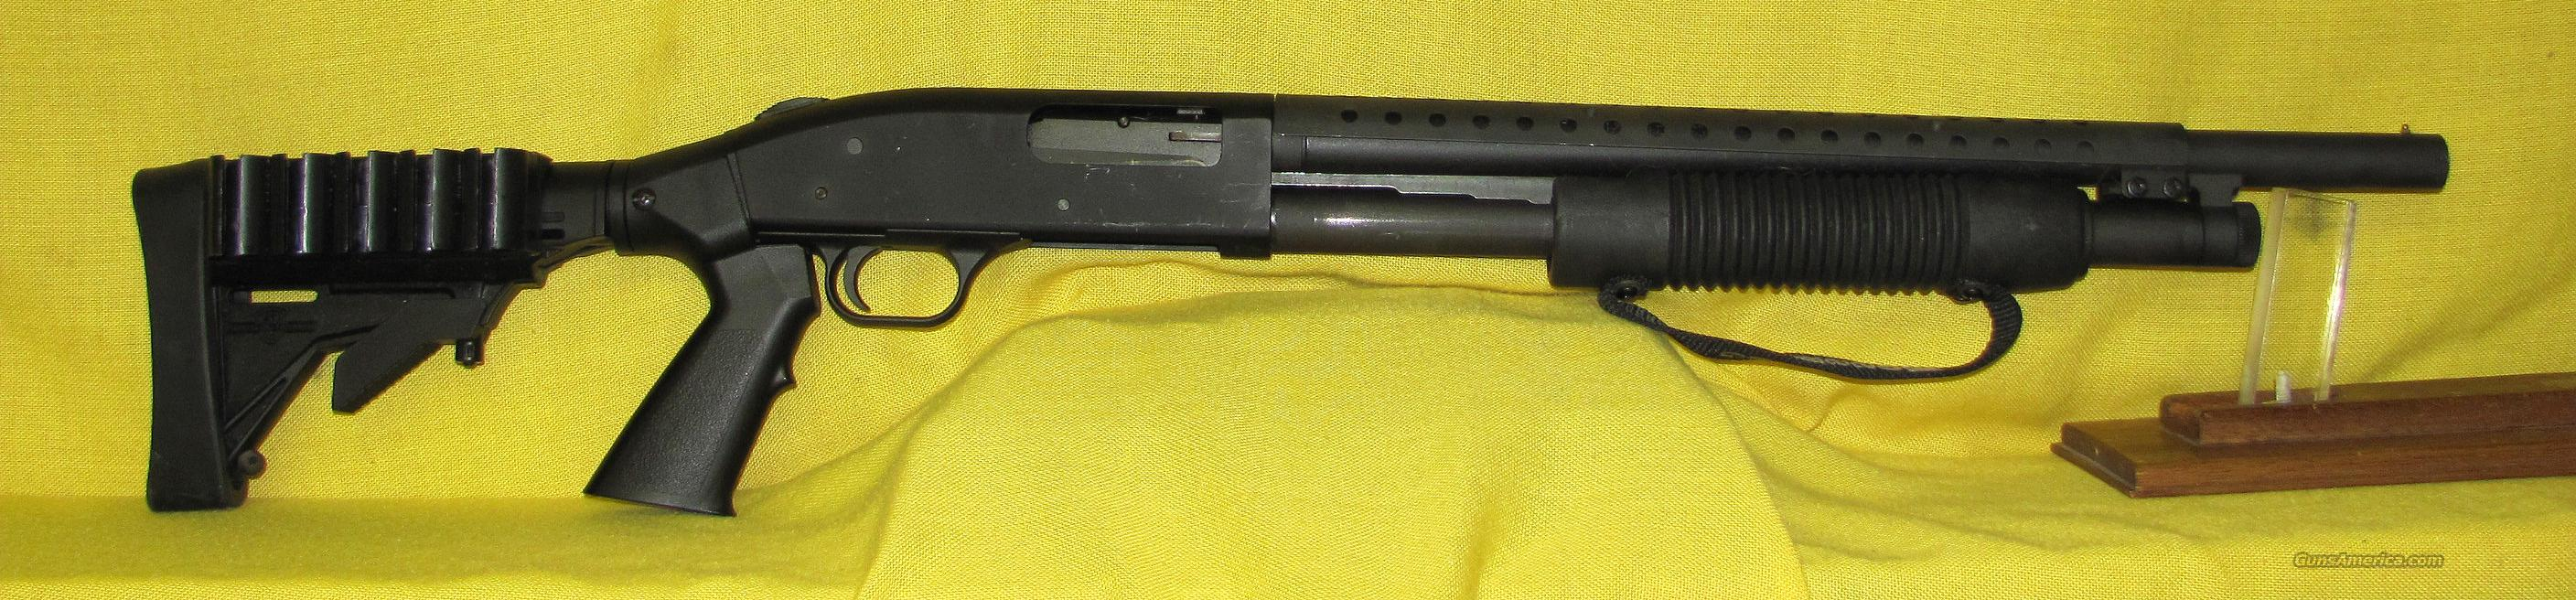 "MOSSBERG 500A TACTICAL 12 GA 18"" BBL  Guns > Shotguns > Mossberg Shotguns > Pump > Tactical"